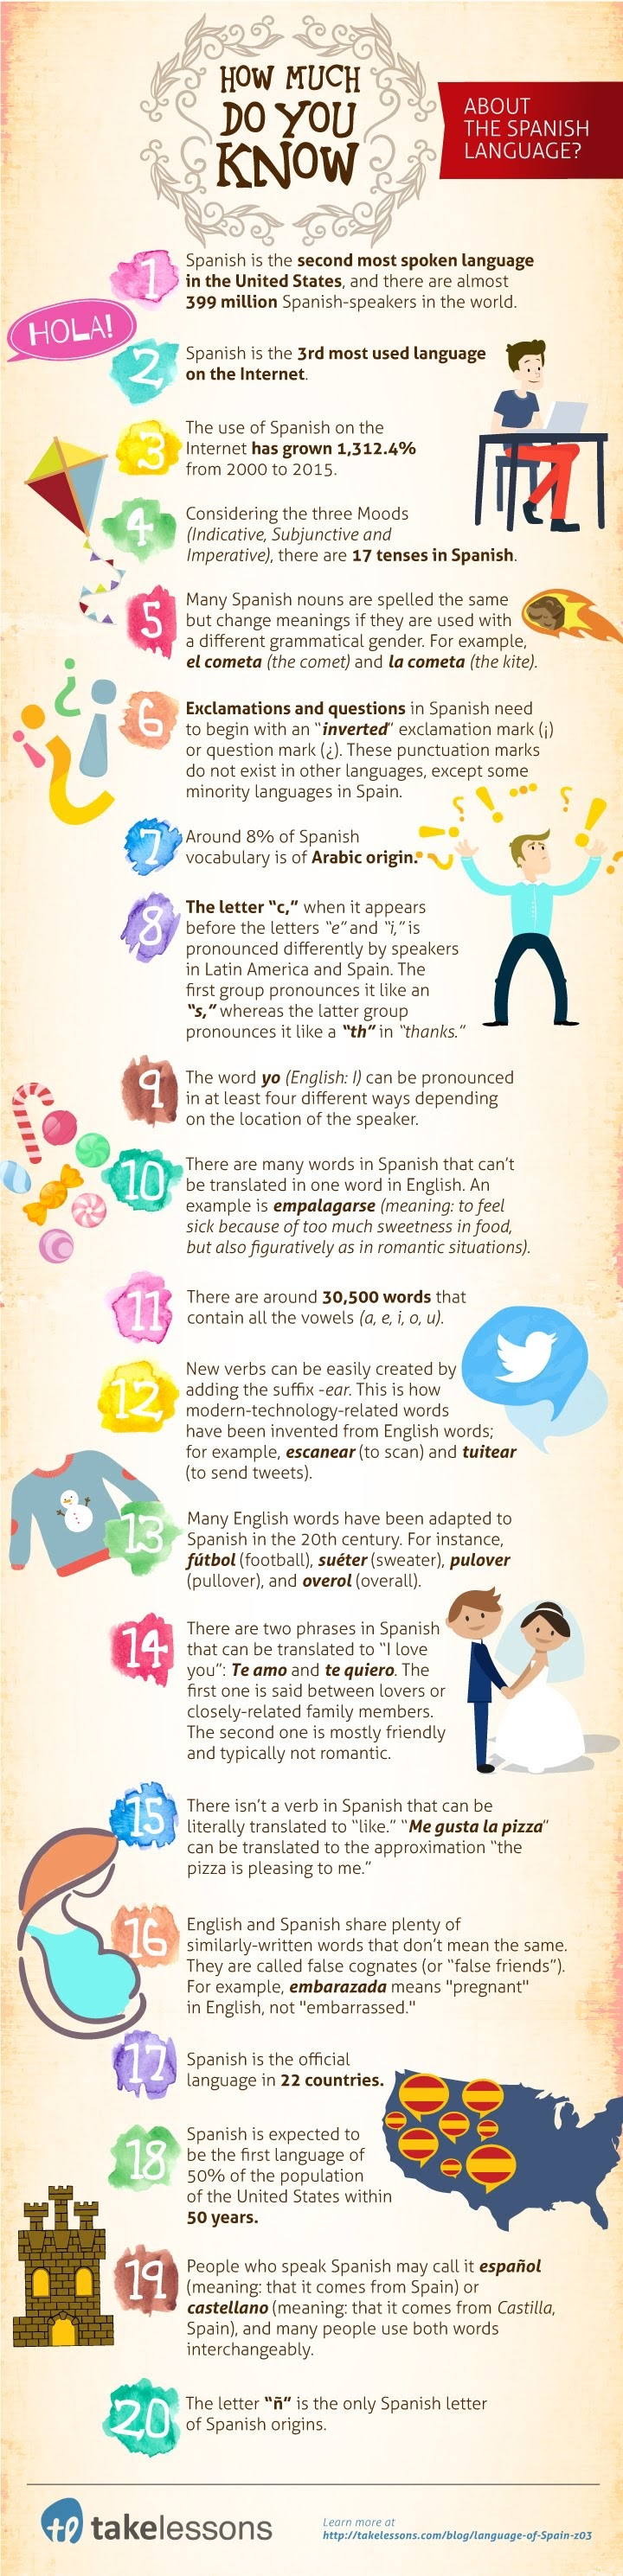 20 Fascinating Facts About the Spanish Language #infographic